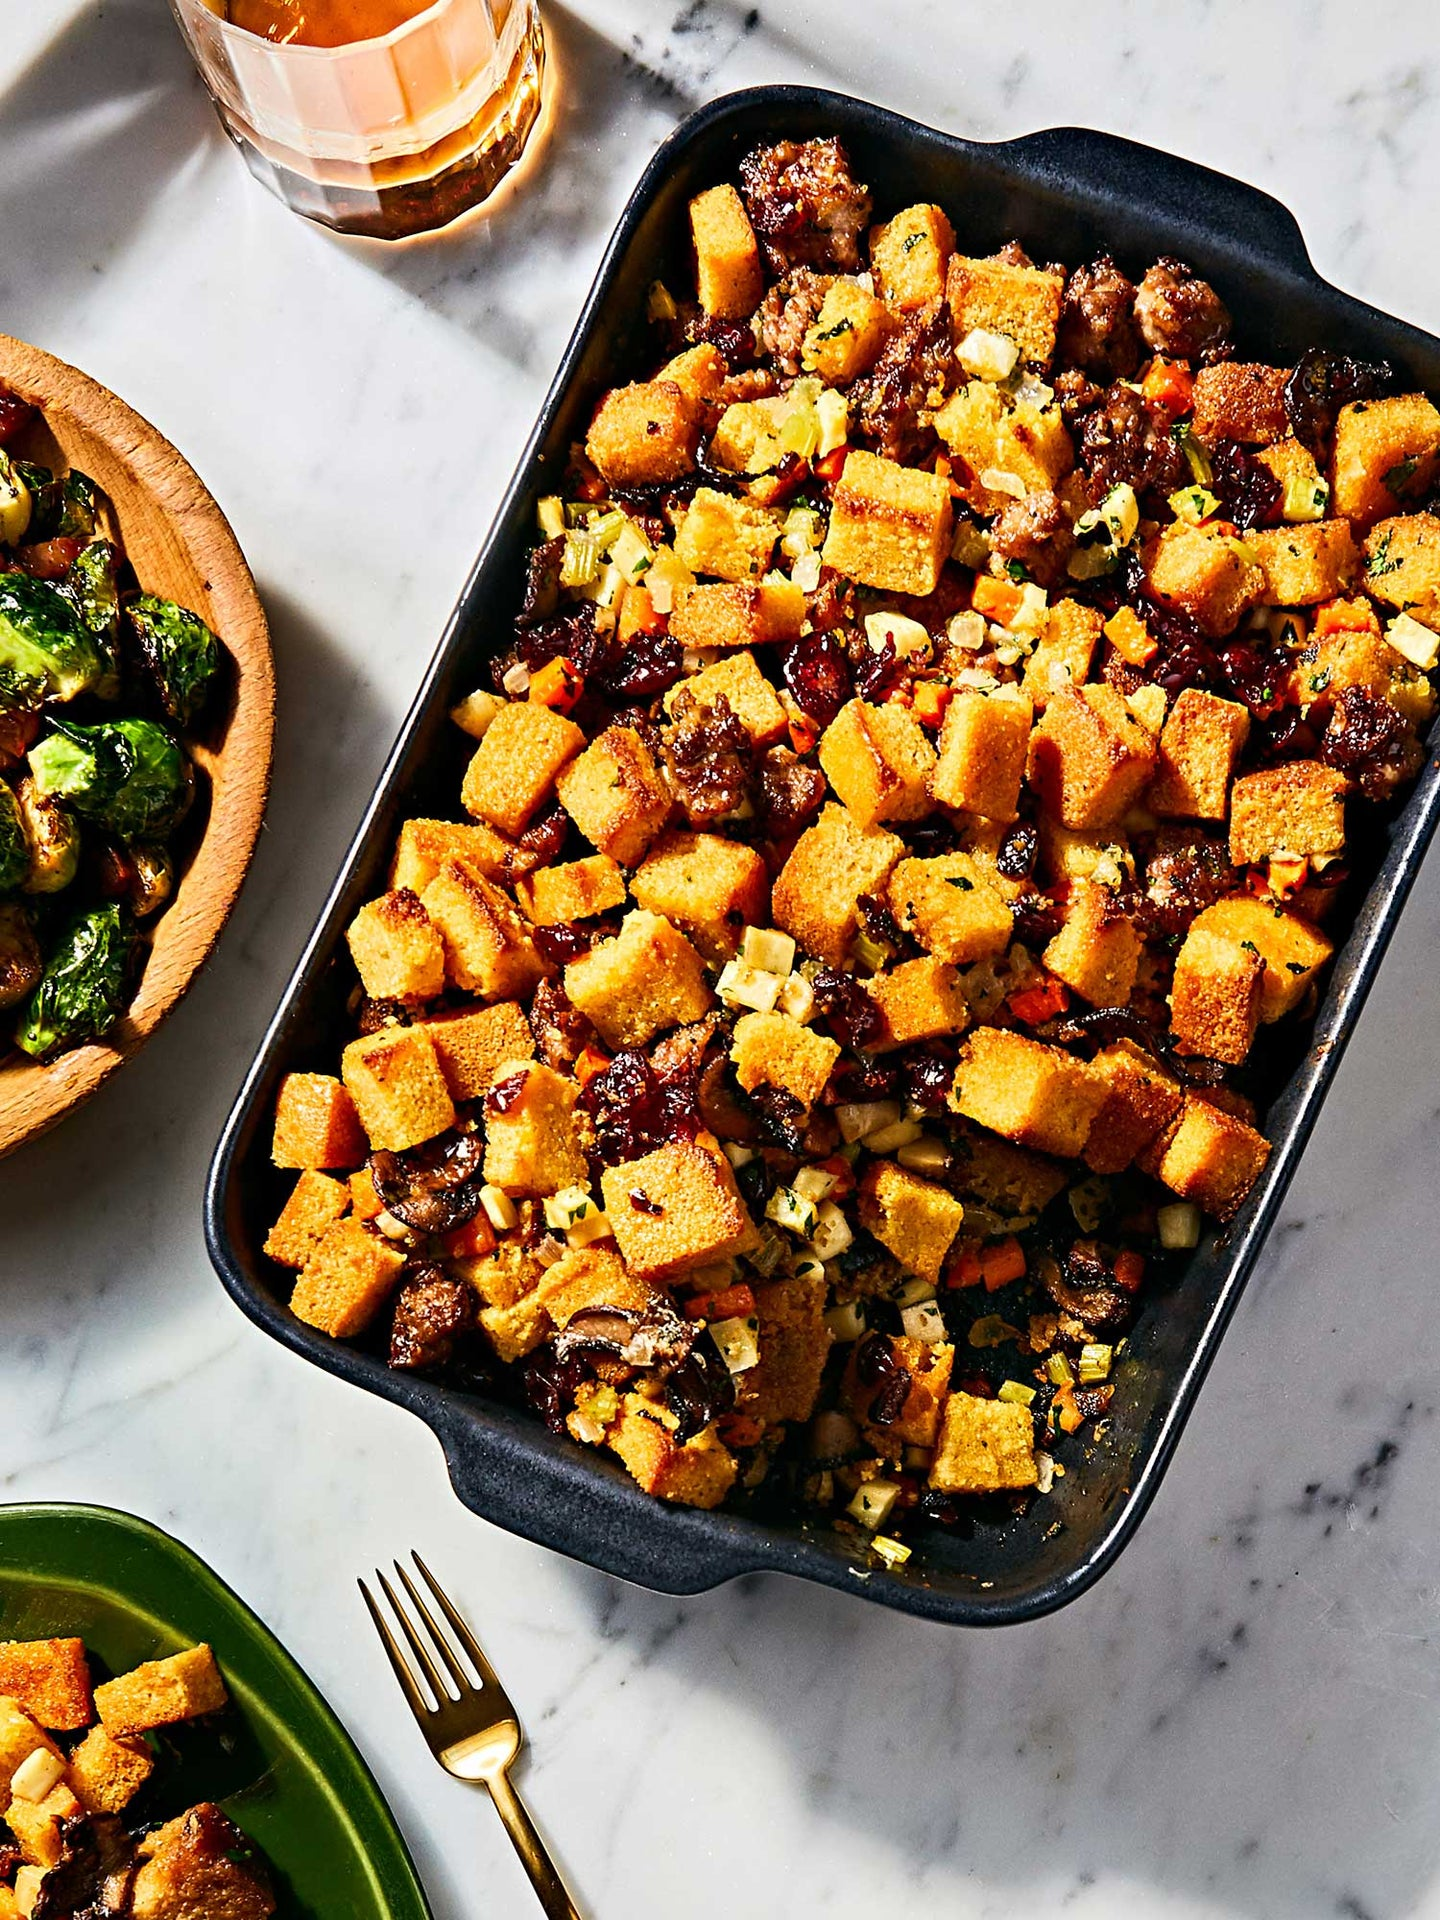 Our 7 Best Stuffing Recipes For Holiday Dinners